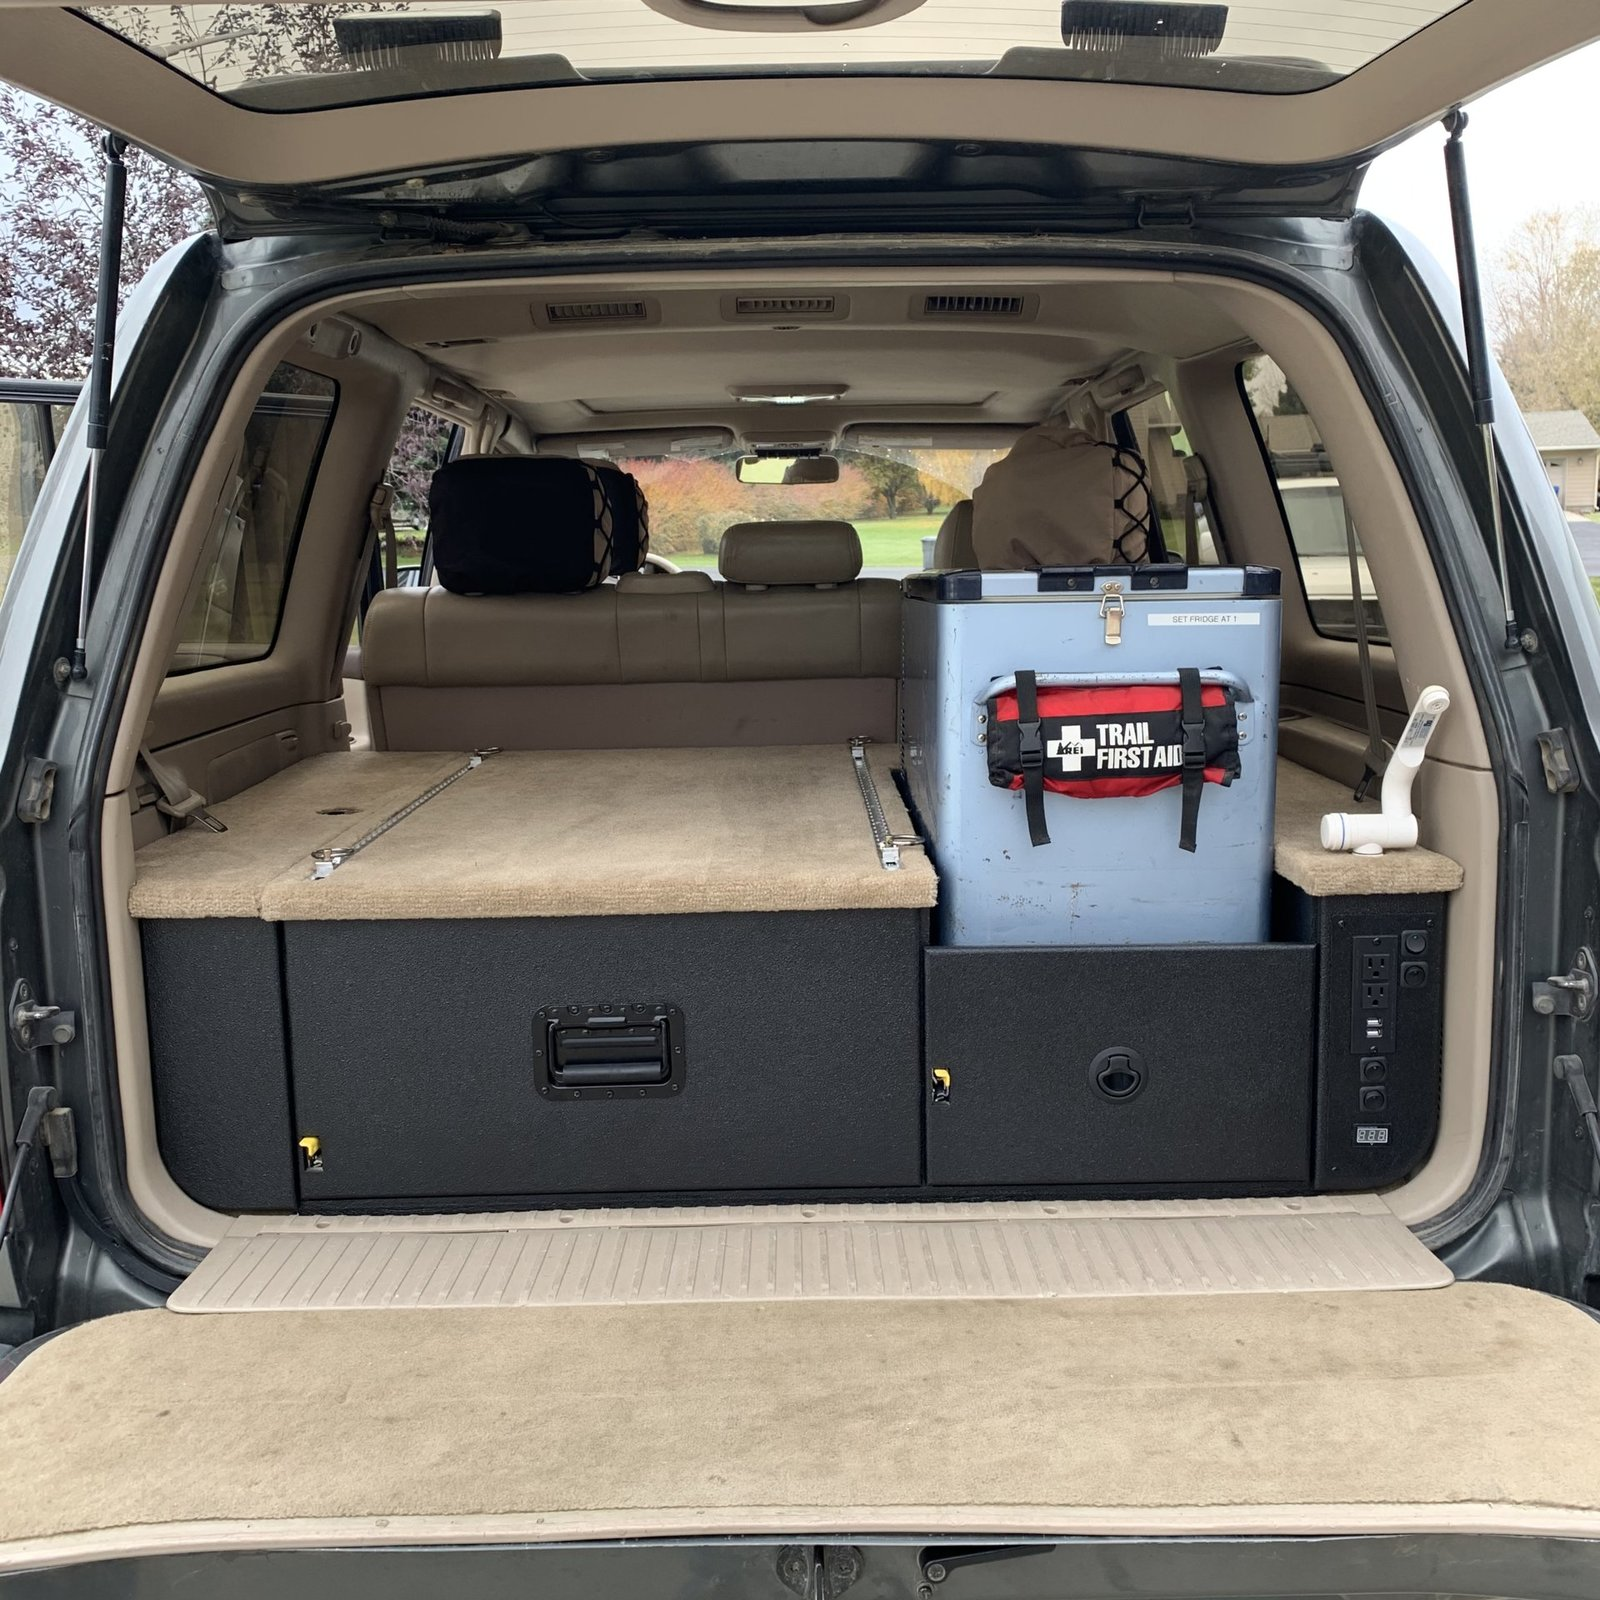 Overland In Bed Drawer System Which Would You Prefer Page 2 Jeep Gladiator Forum Jeepgladiatorforum Com